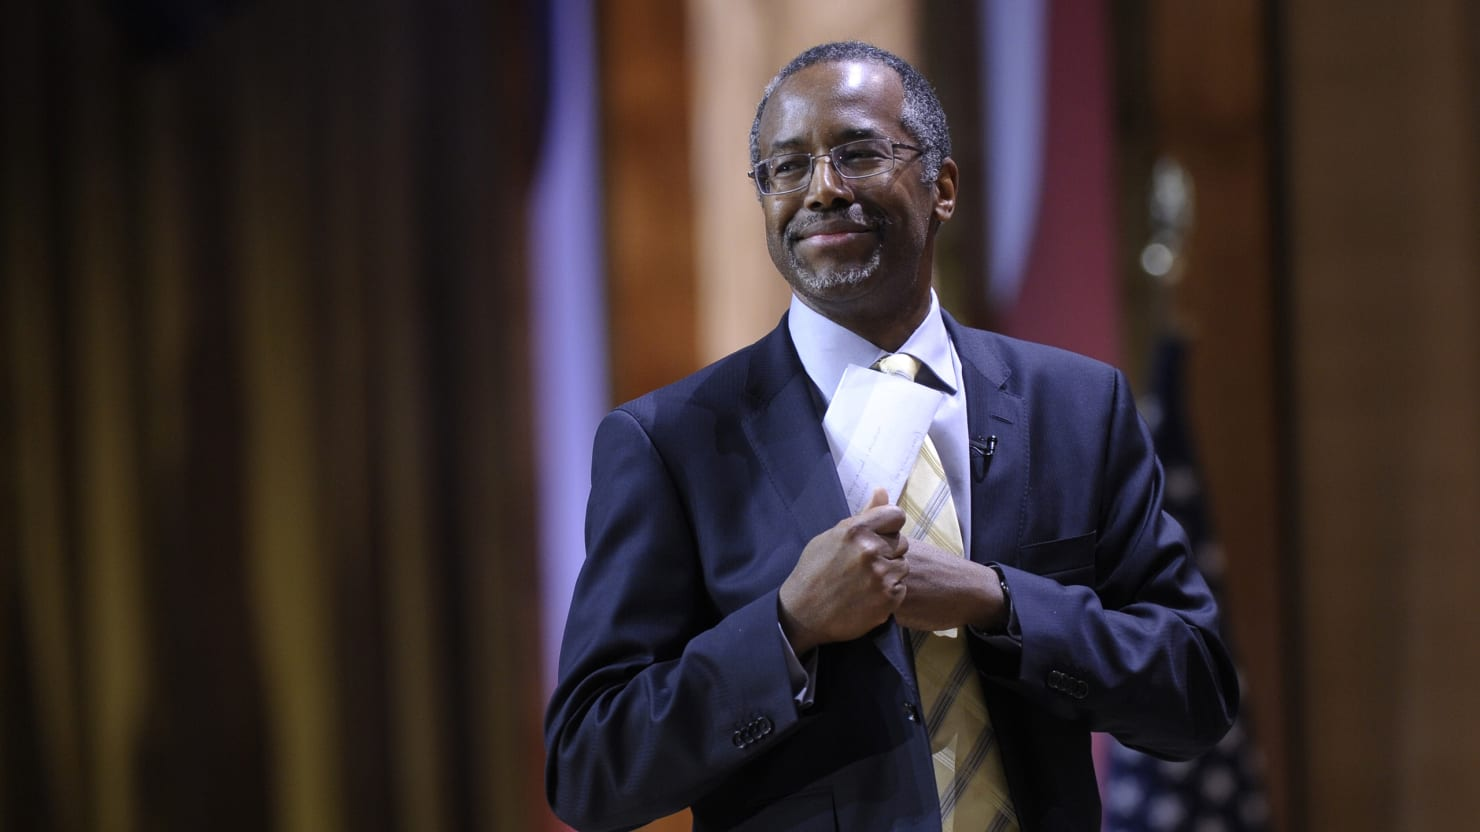 Ben Carson Was a Role Model for Black Teens Until He Sold Out to the Right